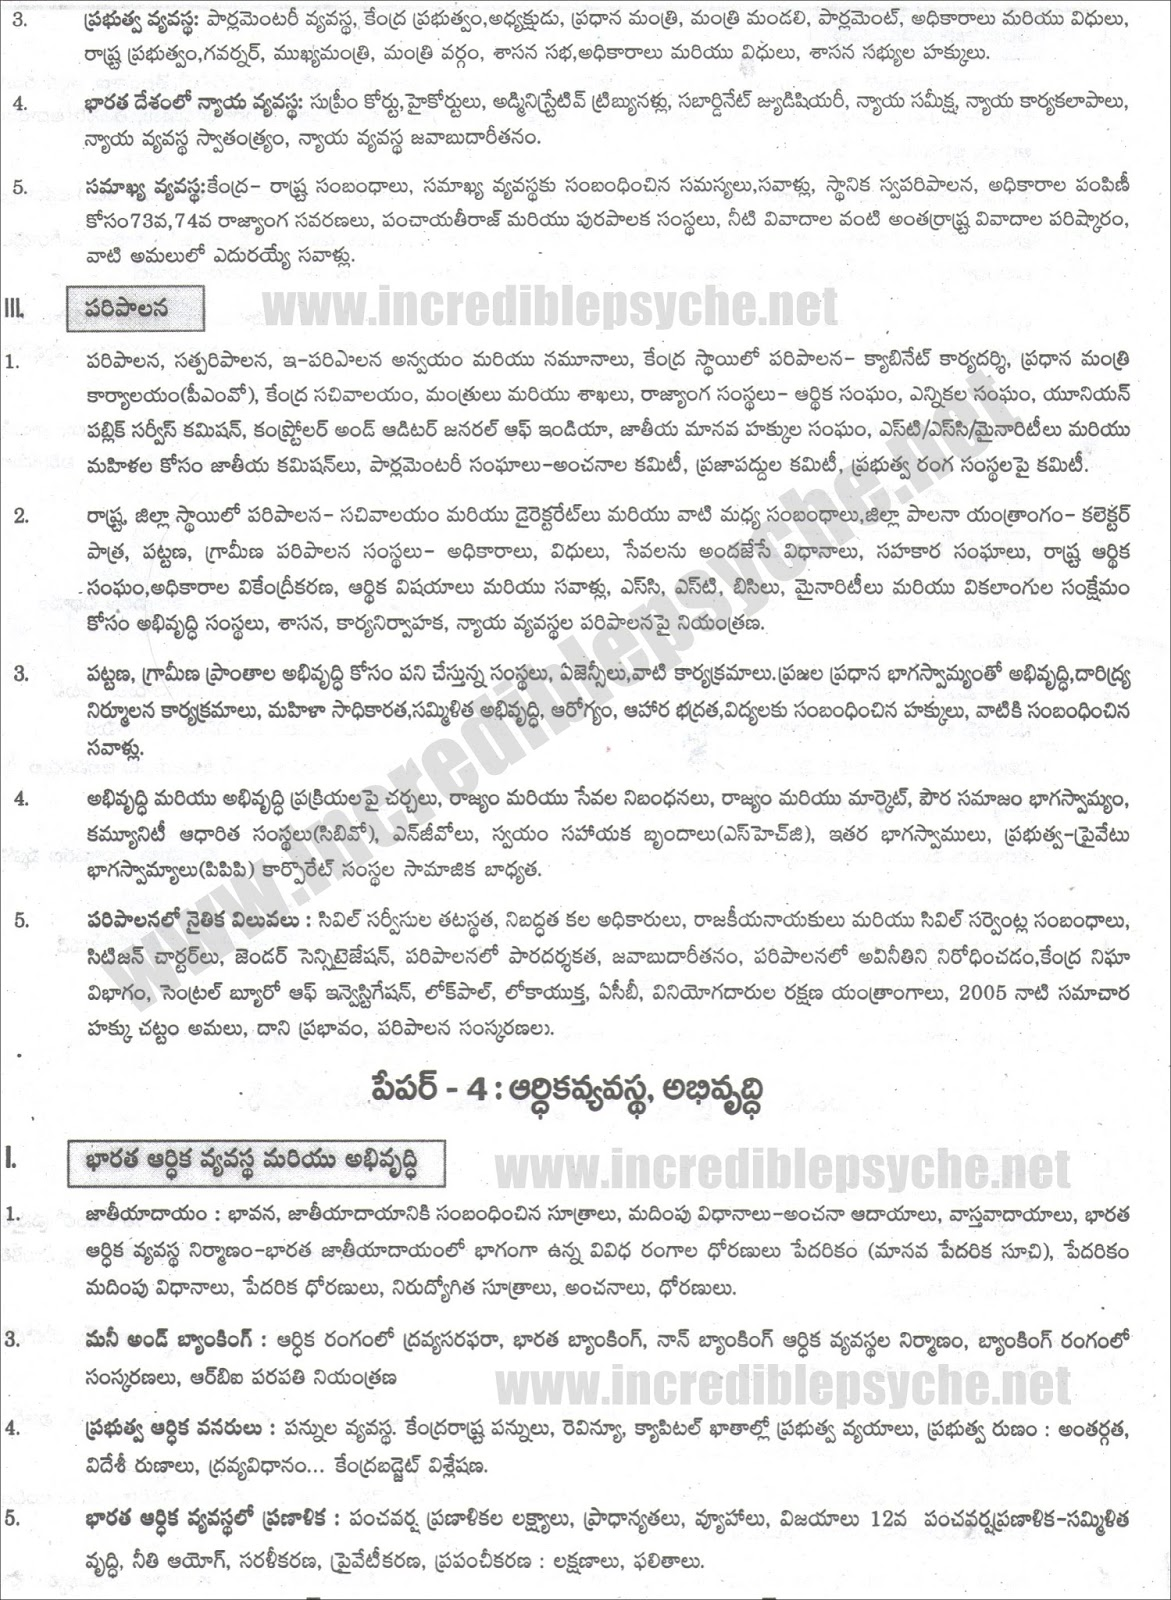 telangana tspsc group 1 exam syllabus in telugu with scheme of exam pattern detailed pattern 4